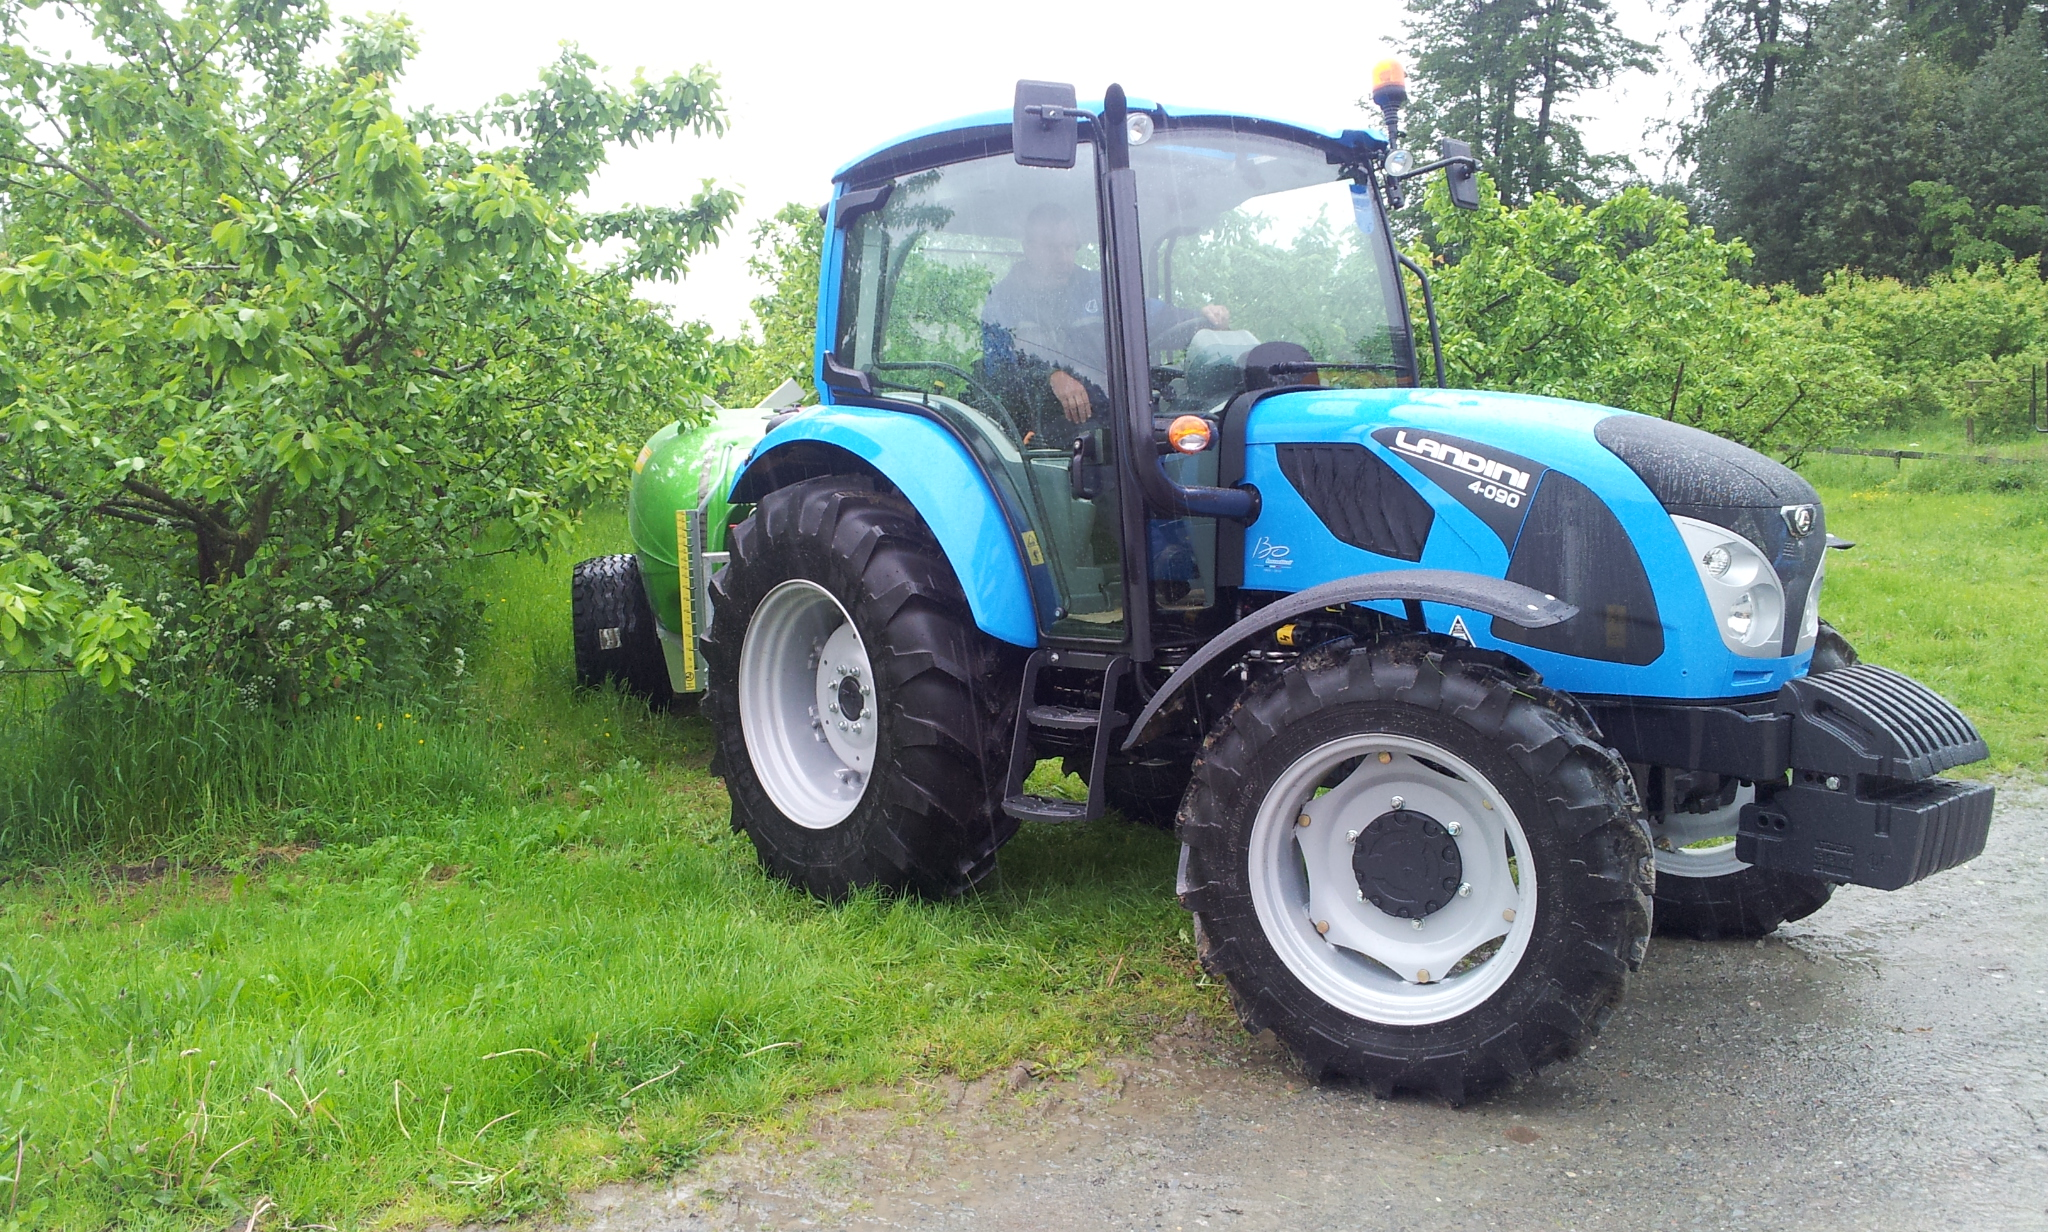 Landini 4 Series tractor is an all-new design primarily for the ...